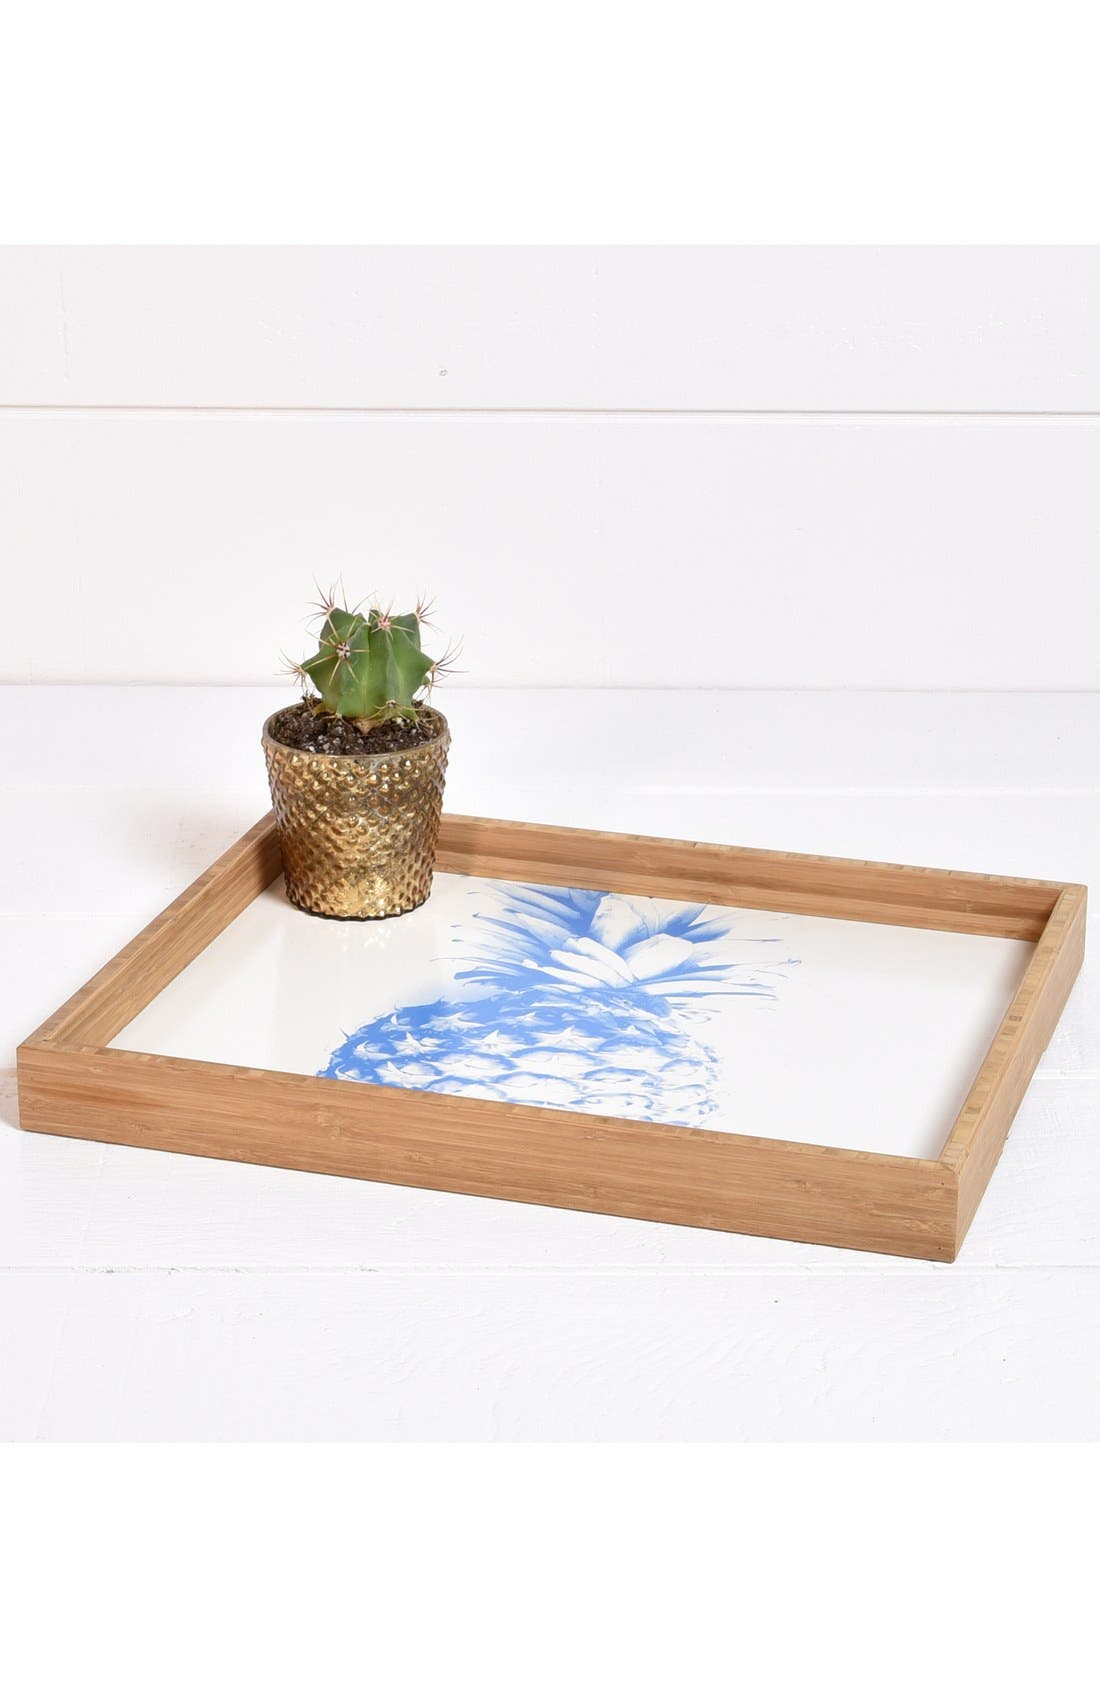 'Pineapple' Decorative Serving Tray,                             Alternate thumbnail 4, color,                             400